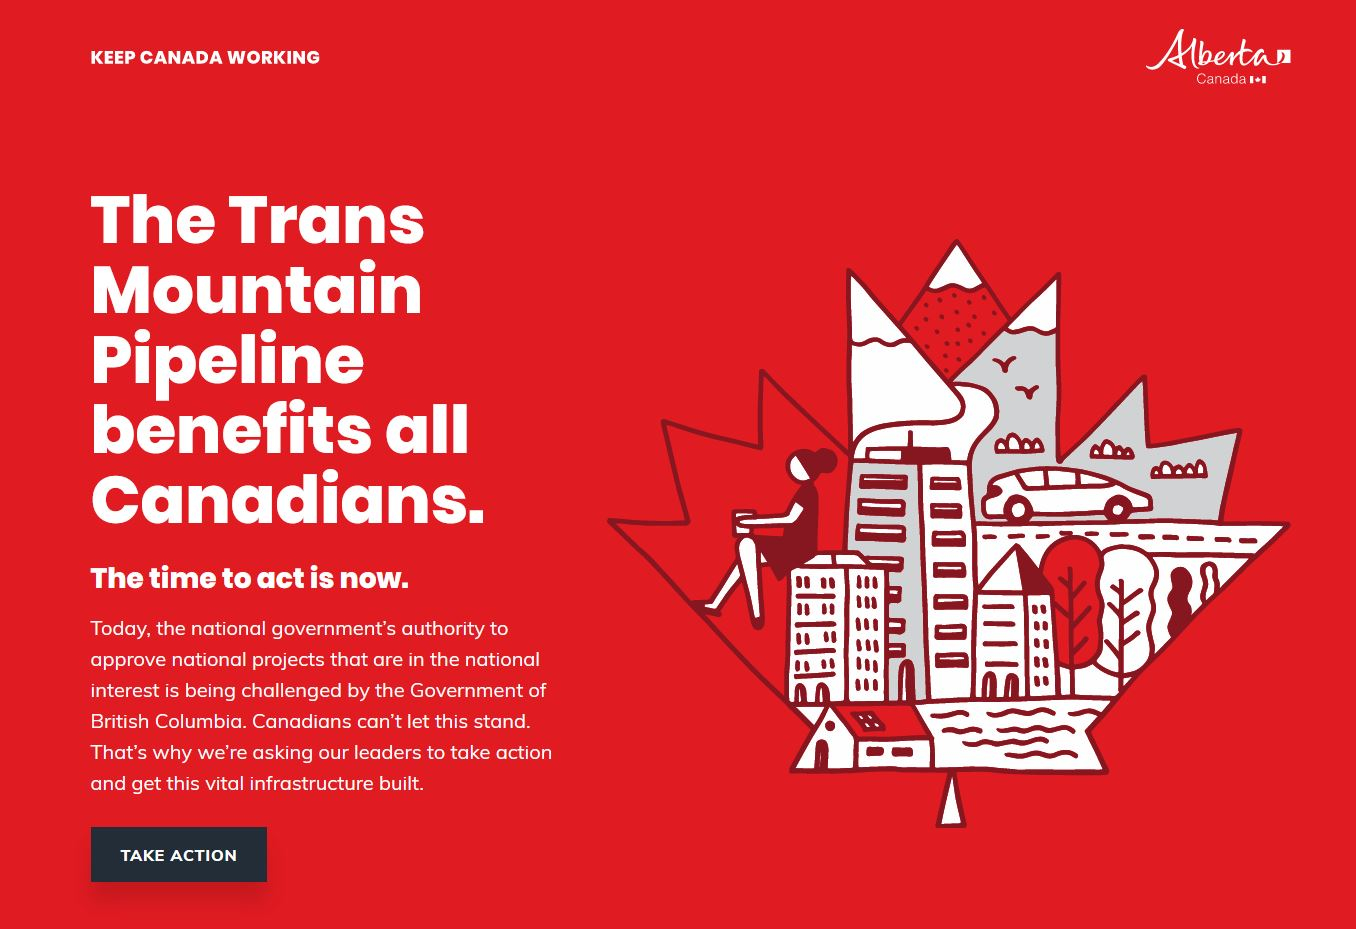 Alberta government posts billboards in BC for Trans Mountain Pipeline campaign